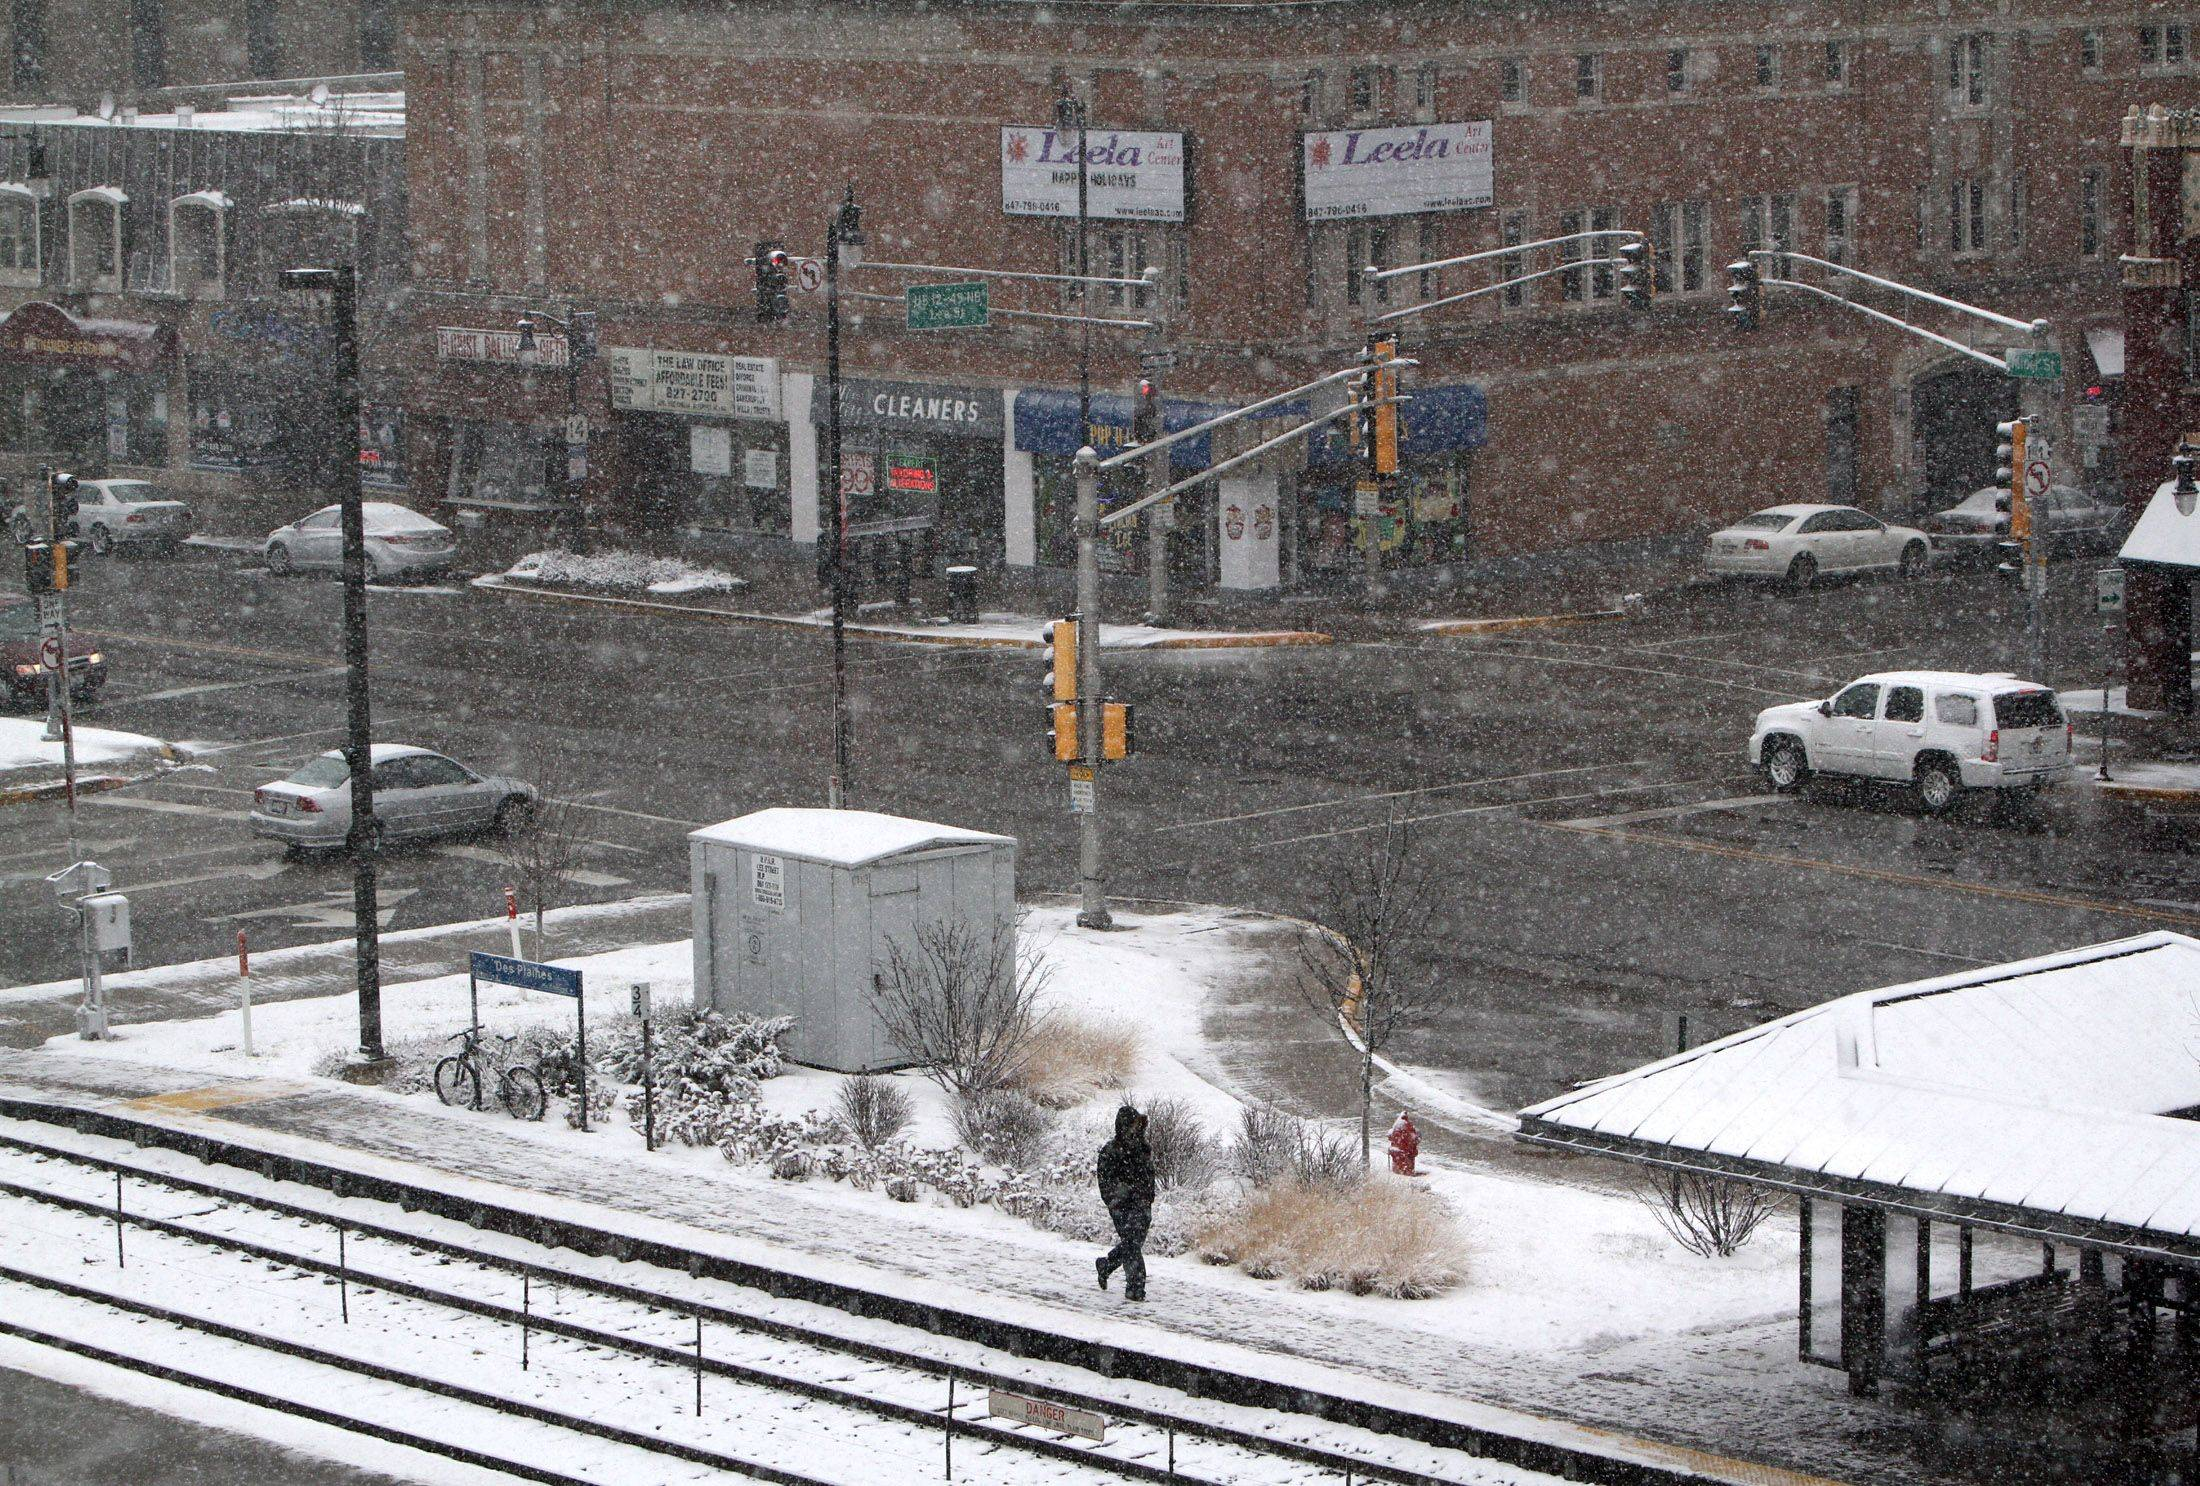 A view of intersection of Northwest Highway and Lee Street from the third floor of the Des Plaines Library during the late-arriving first snow storm of the season.